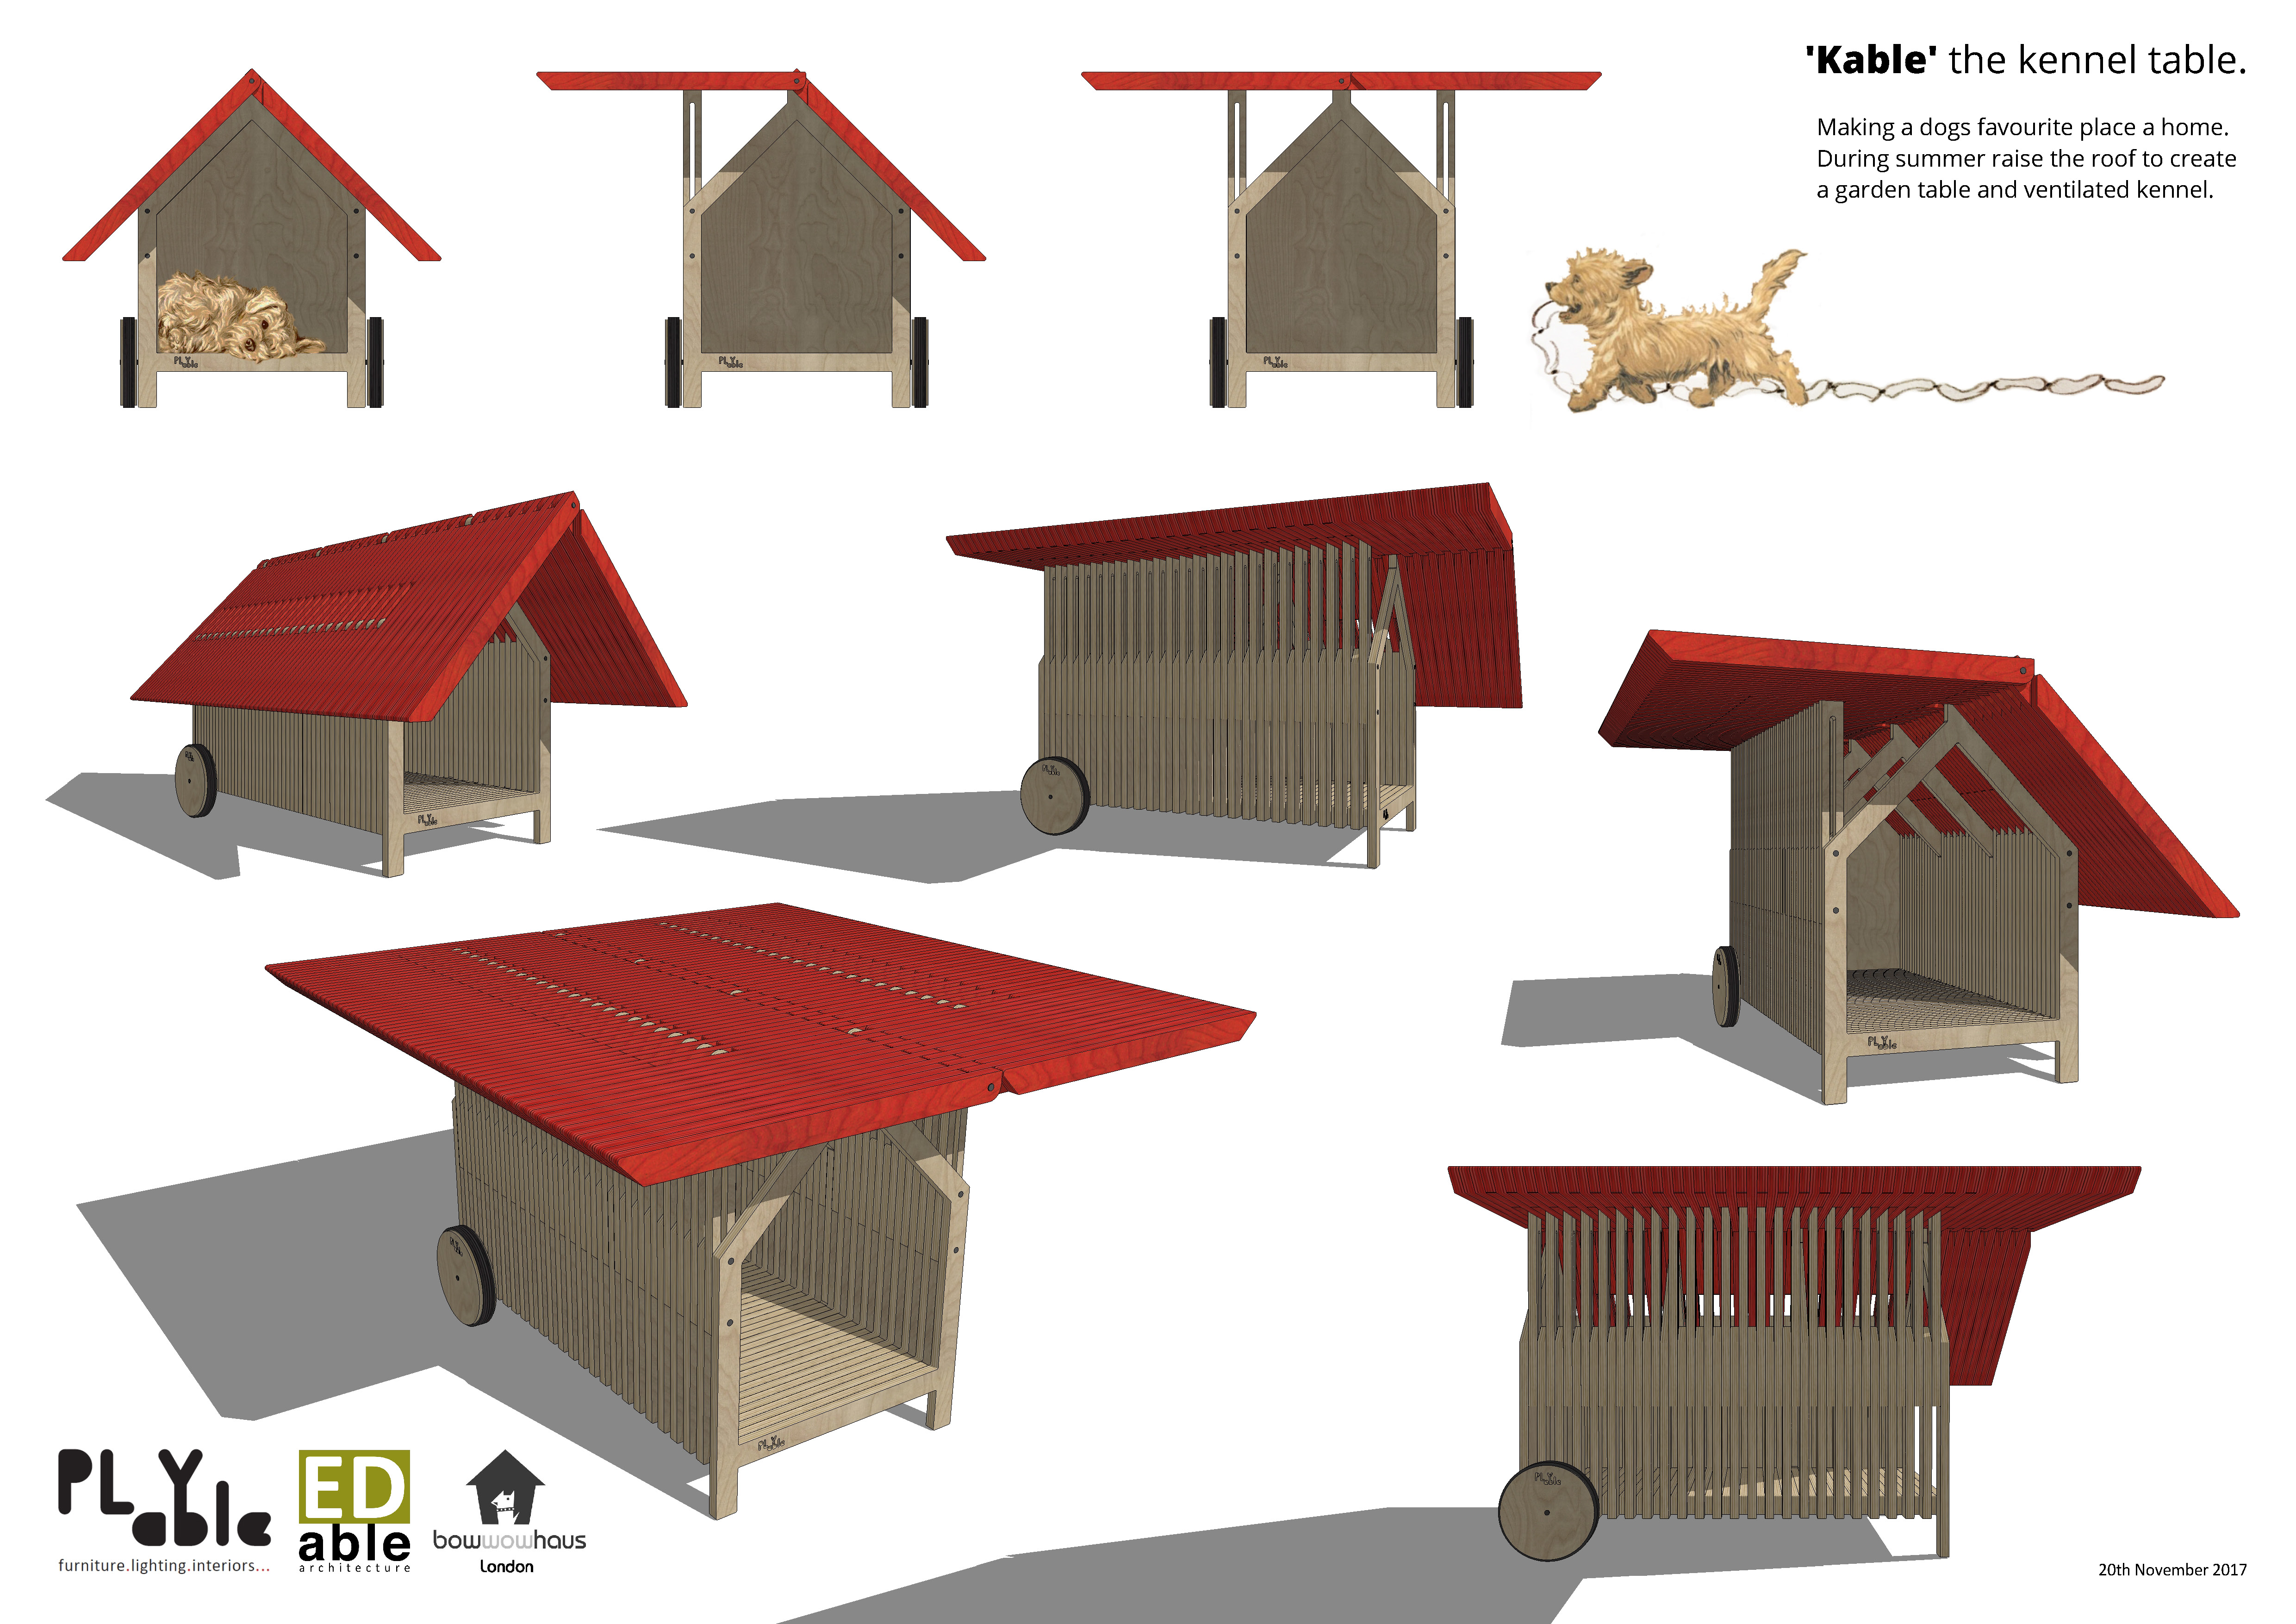 Lot 12 - PLYable Design and EDable Architecture - Kable the Kennel Table